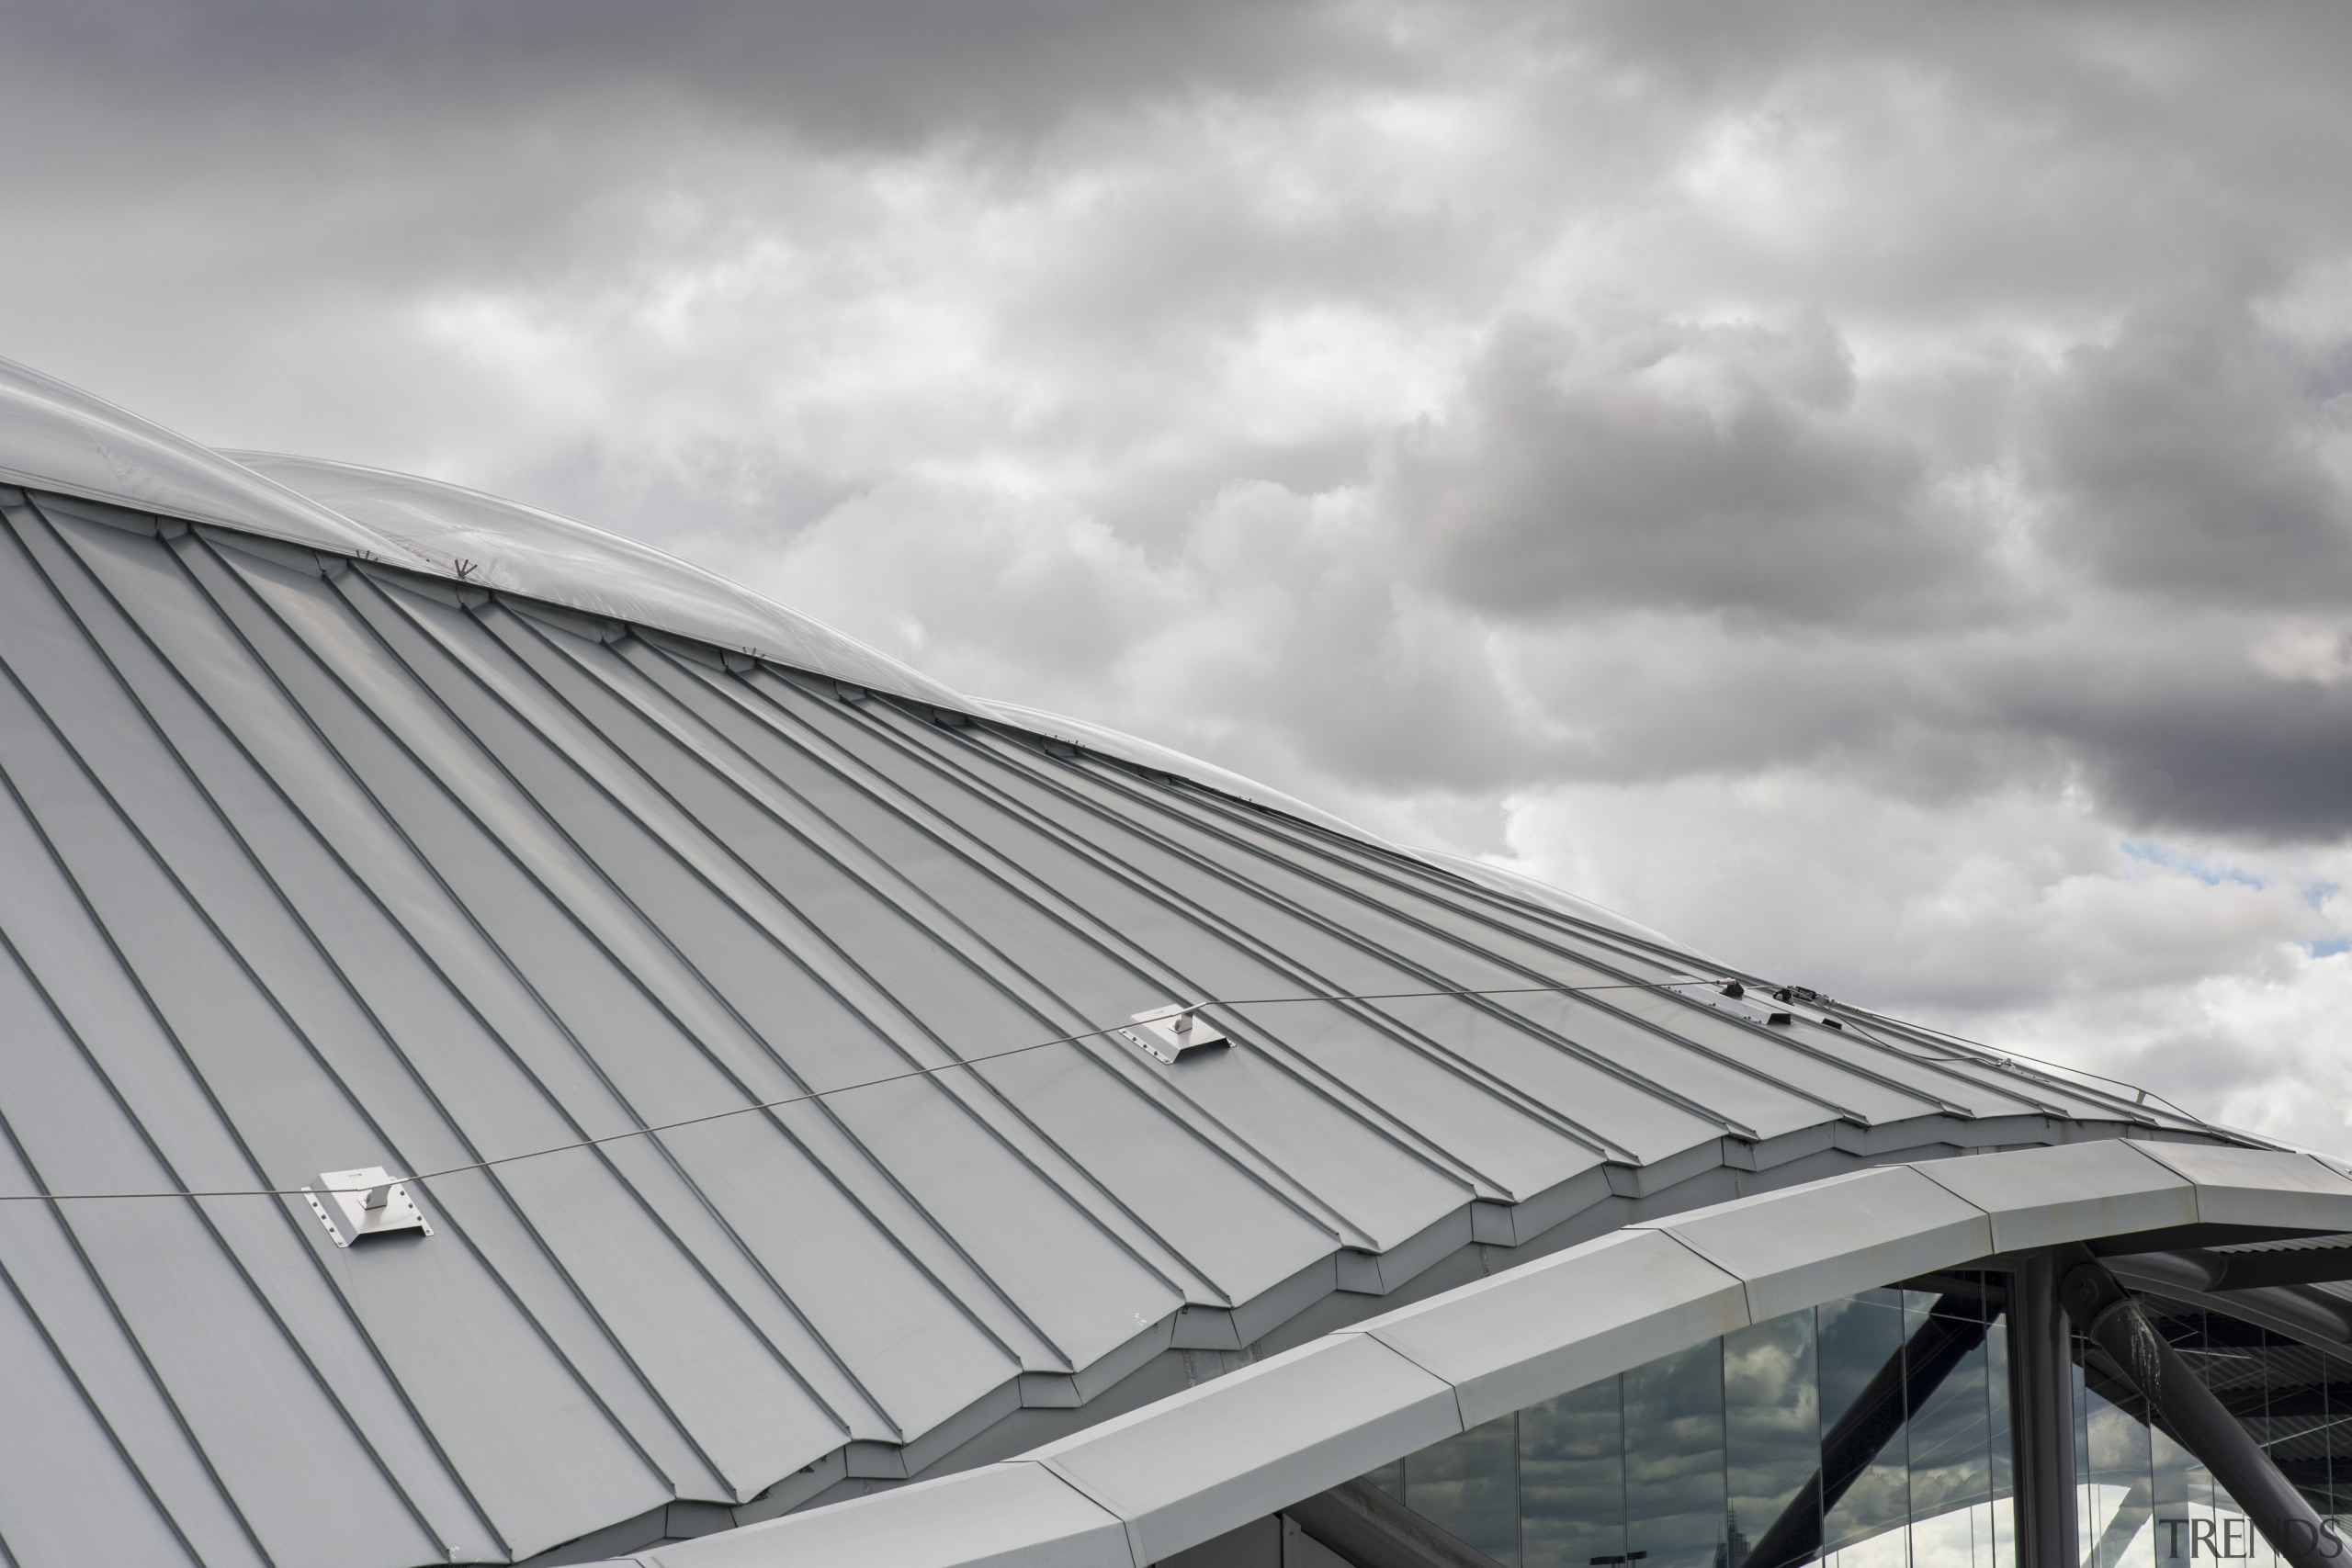 The roof was chosen in part for its architecture, building, cloud, daylighting, daytime, facade, line, roof, sky, structure, gray